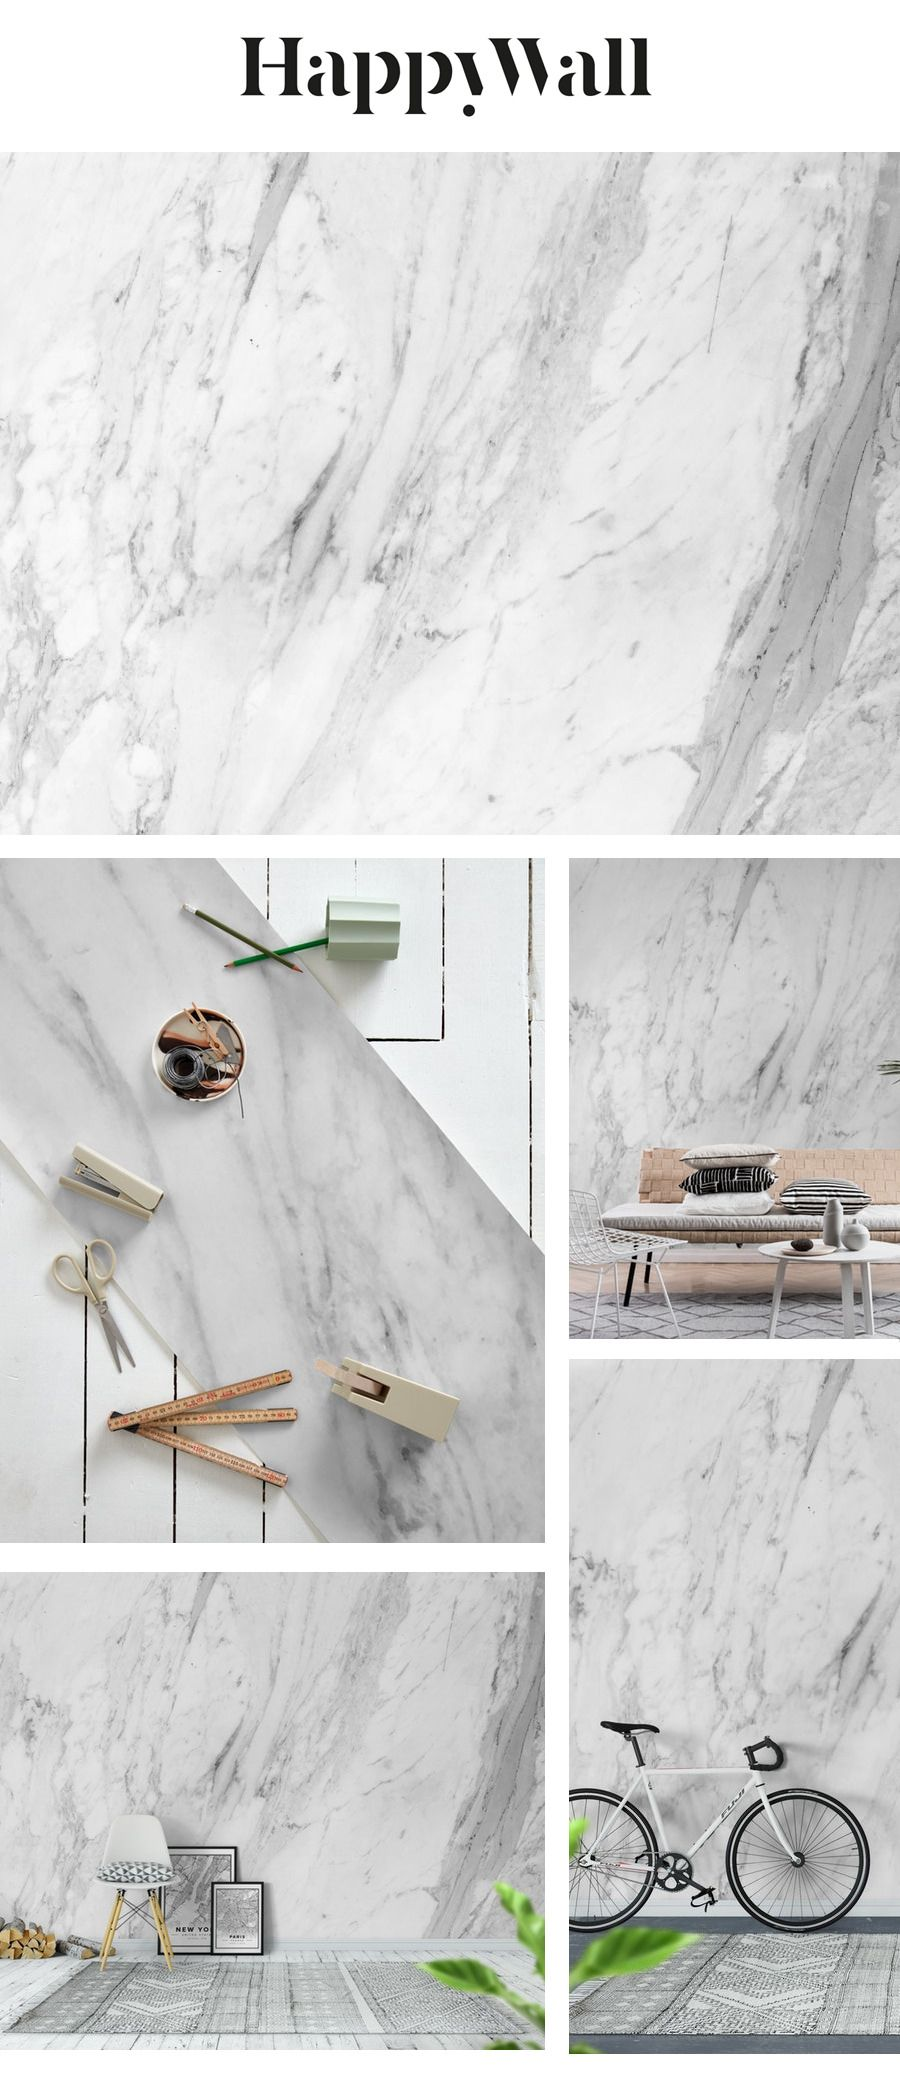 Marble surface wall mural from Happywall #marbled #stone #marblerosegold #marbleglitter #smooth #marbleglam #white #marblegeo #wallmural #black #marblesky #surface #marbleabstract #granite #counter #marbletexture #marbledesign #marble #wallpapers #wallmurals #happywall #and #wallpaper #marblestripes #marblevibe